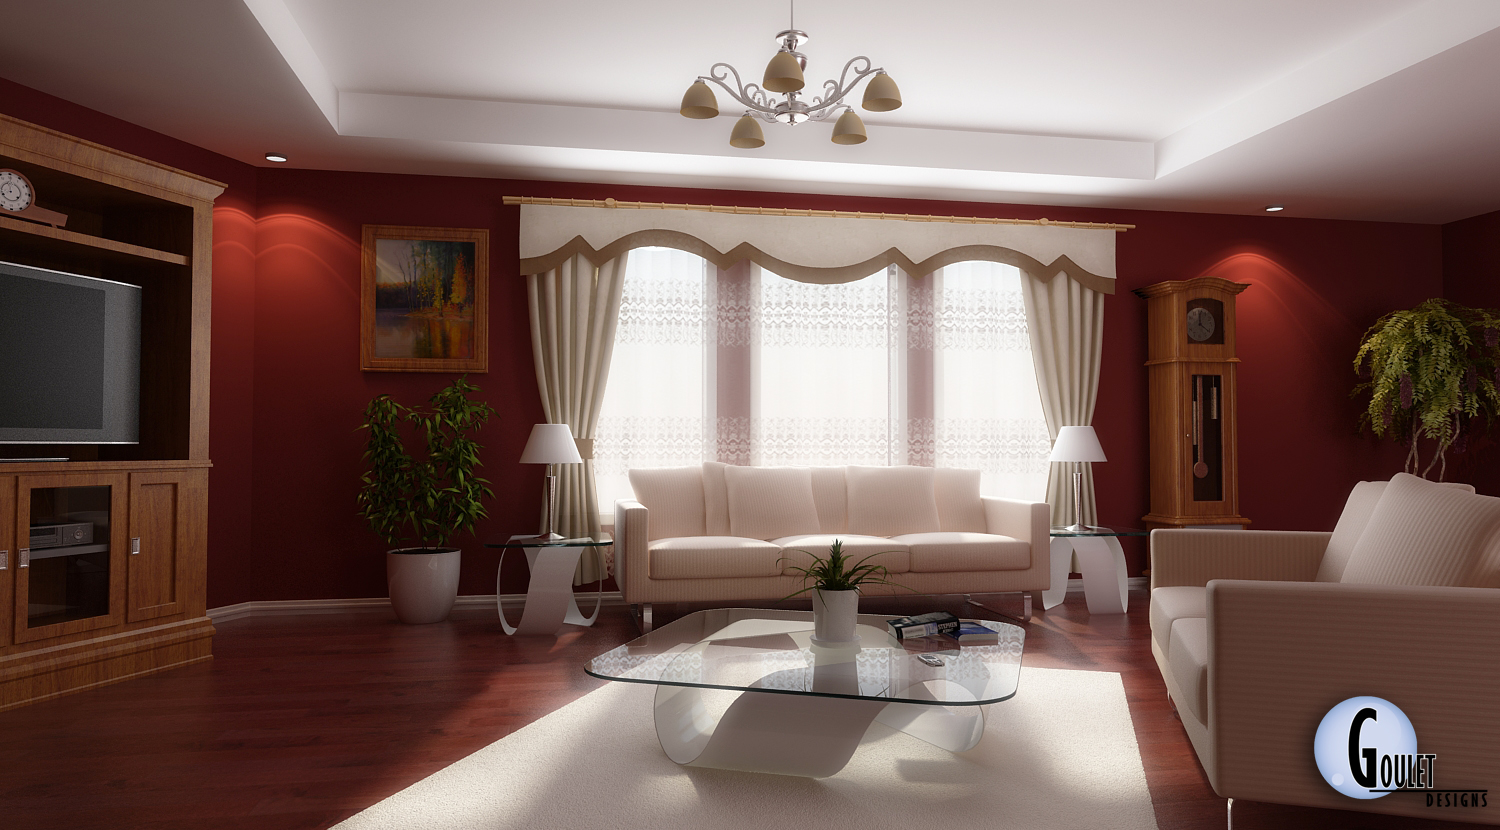 File:Lovely-remarkable-red-purple-living-room-ideas.jpg